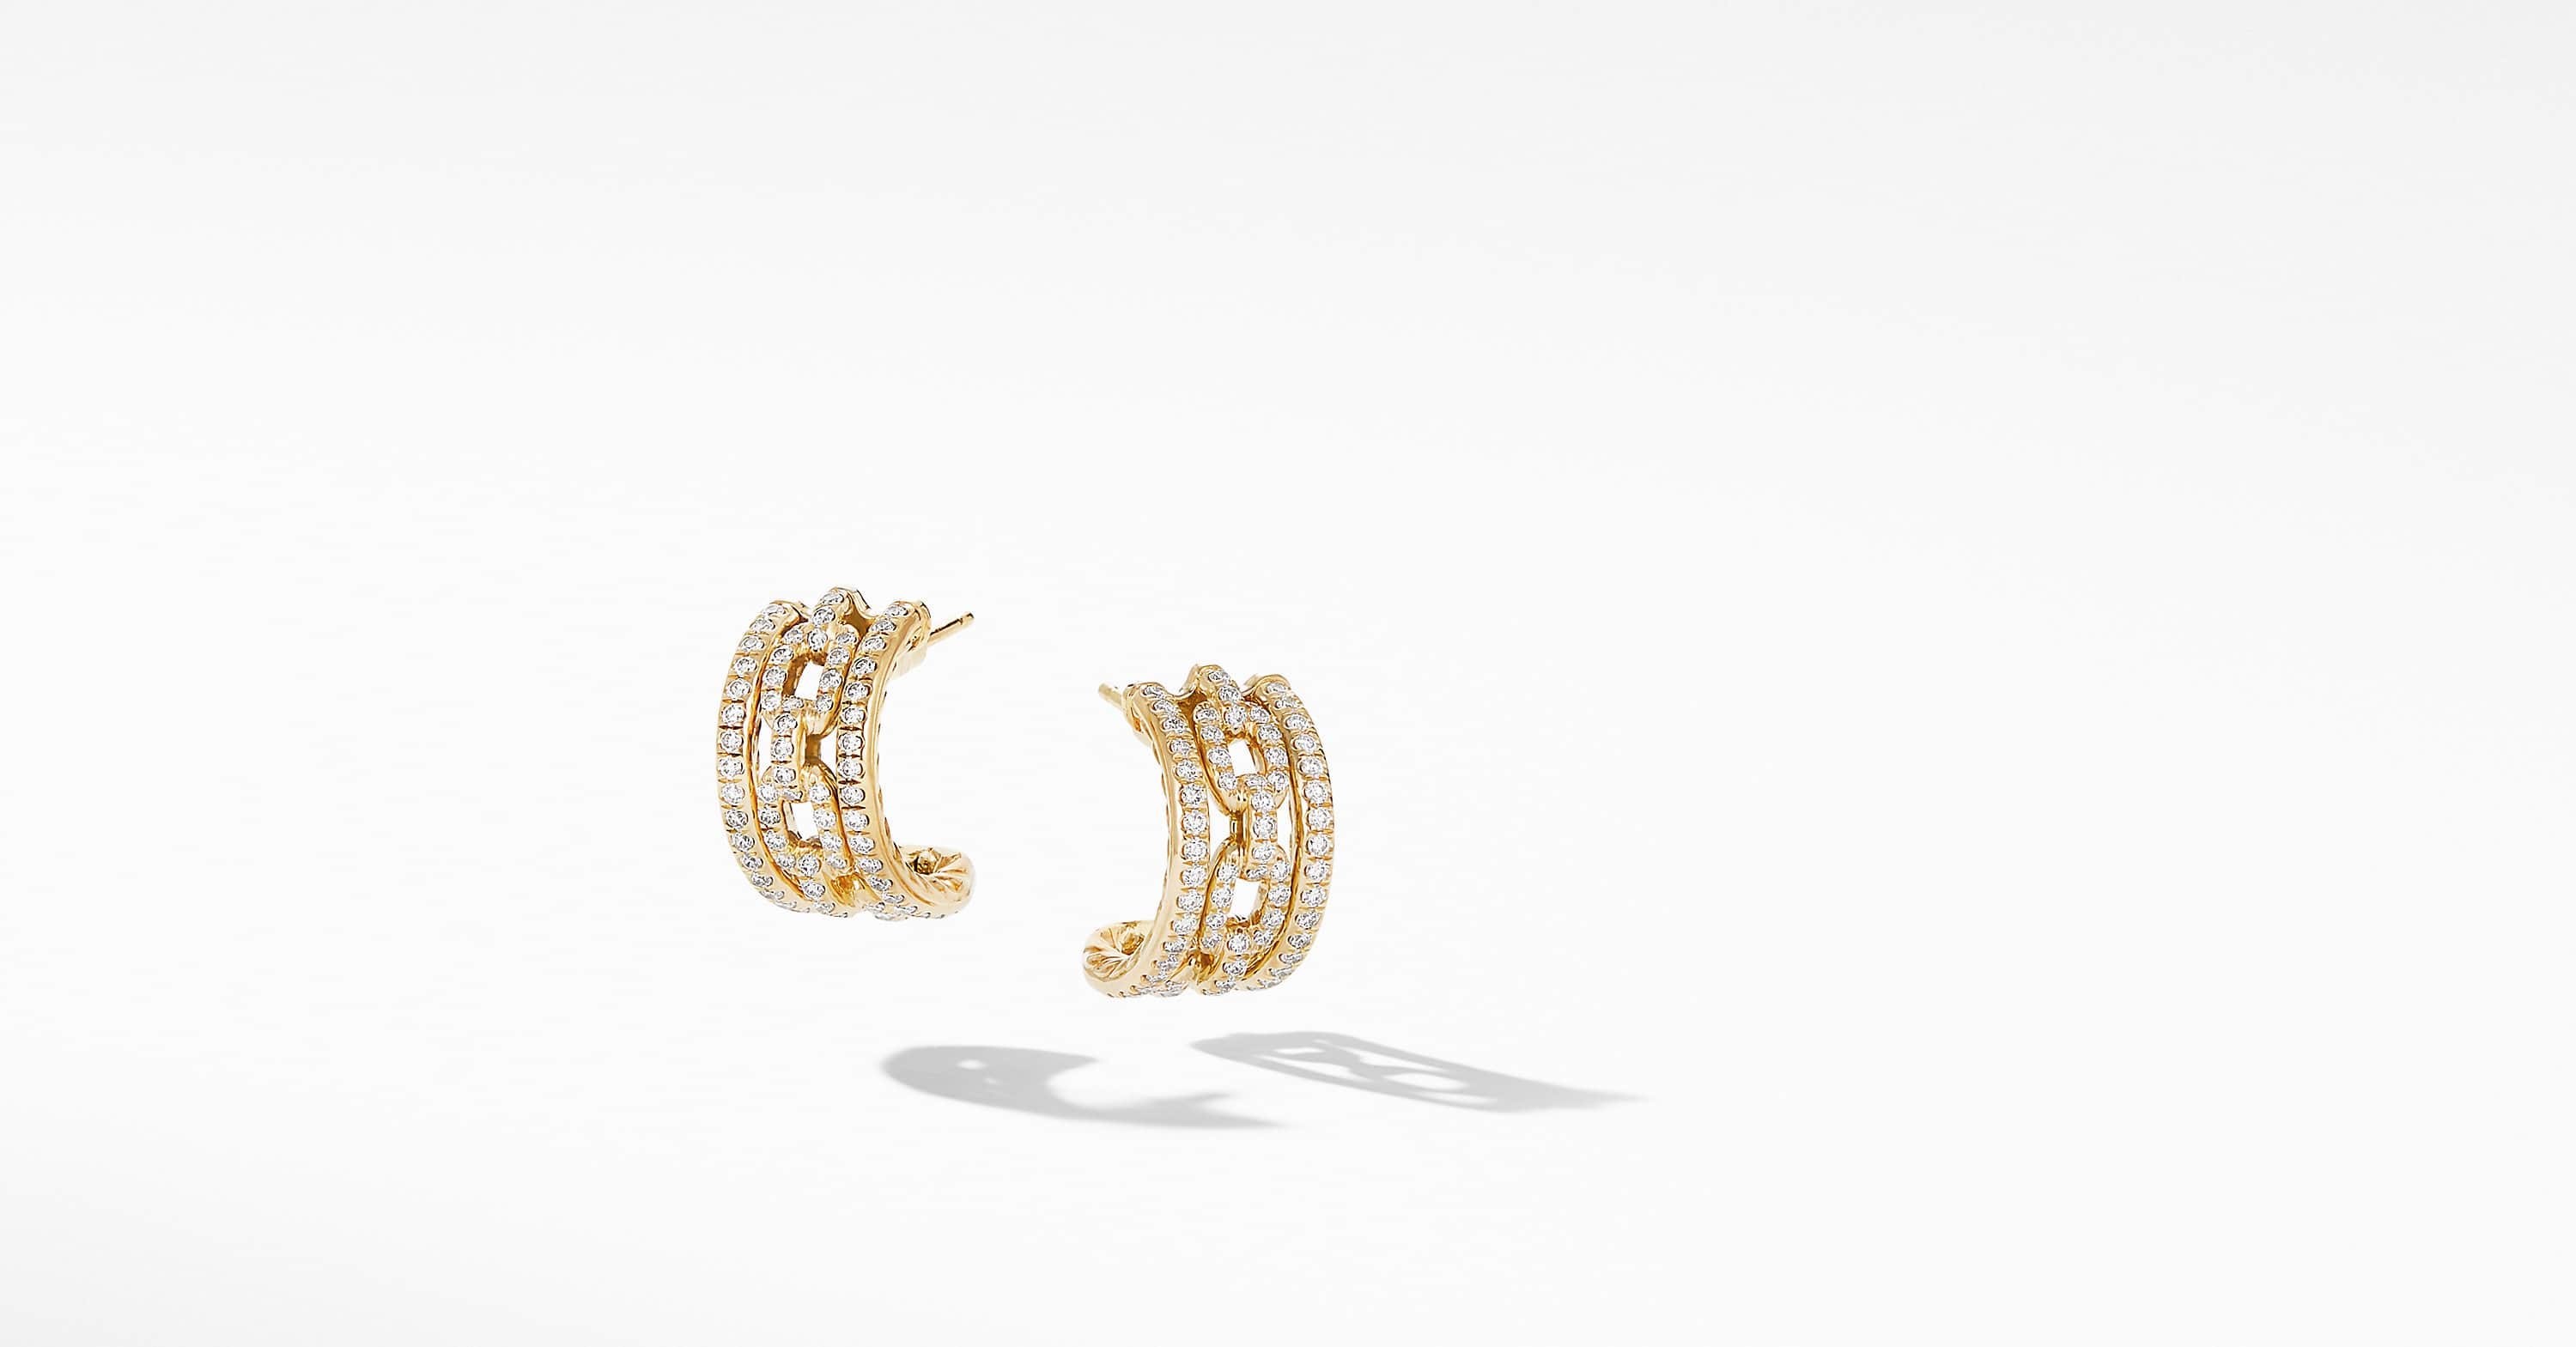 Stax Chain Link and Pavé Huggie Hoops in 18K Yellow Gold